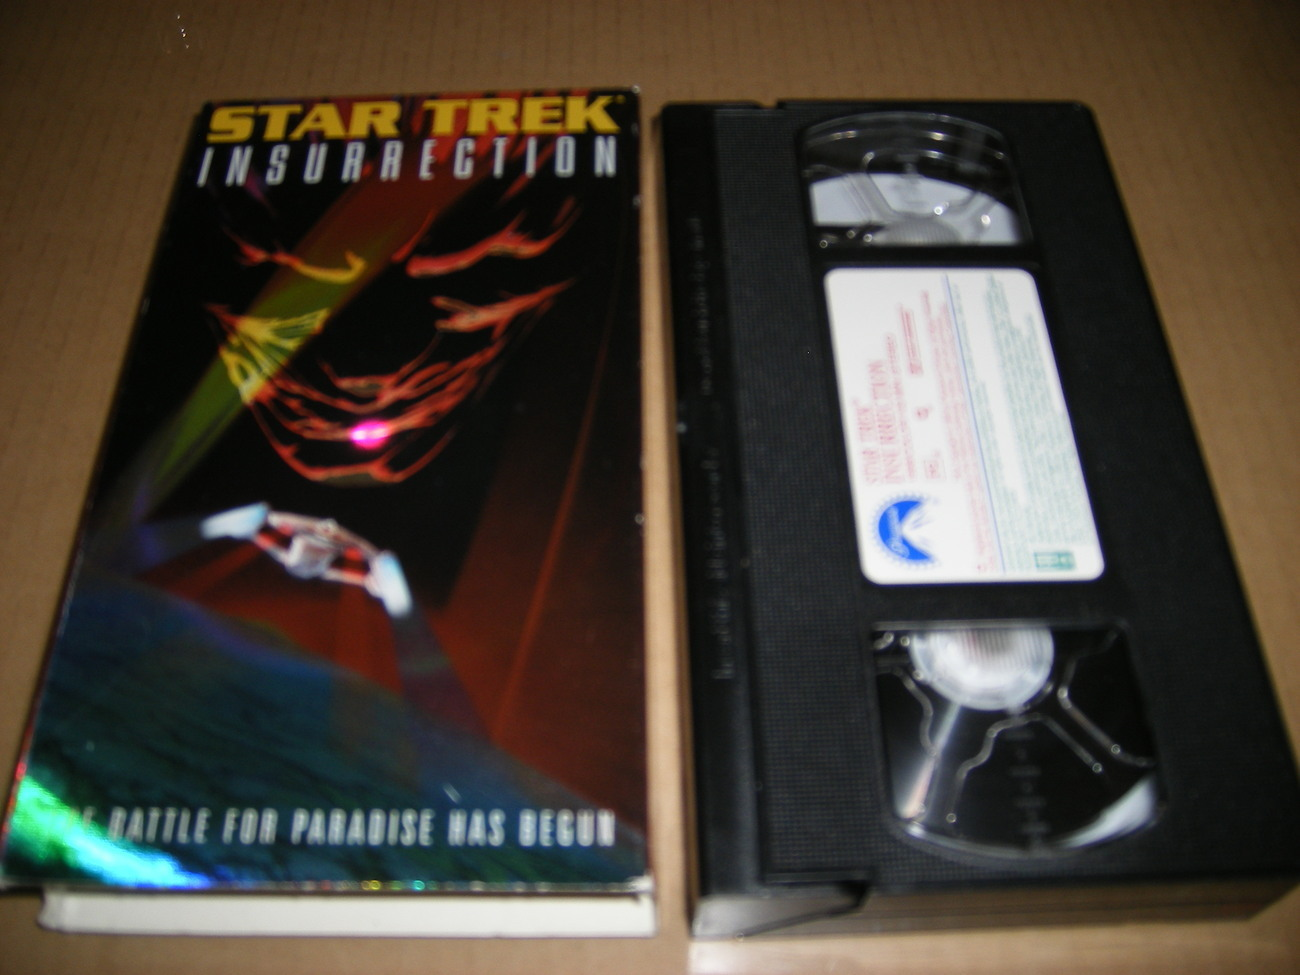 STAR TREK: INSURRECTION  (VHS, 1967)